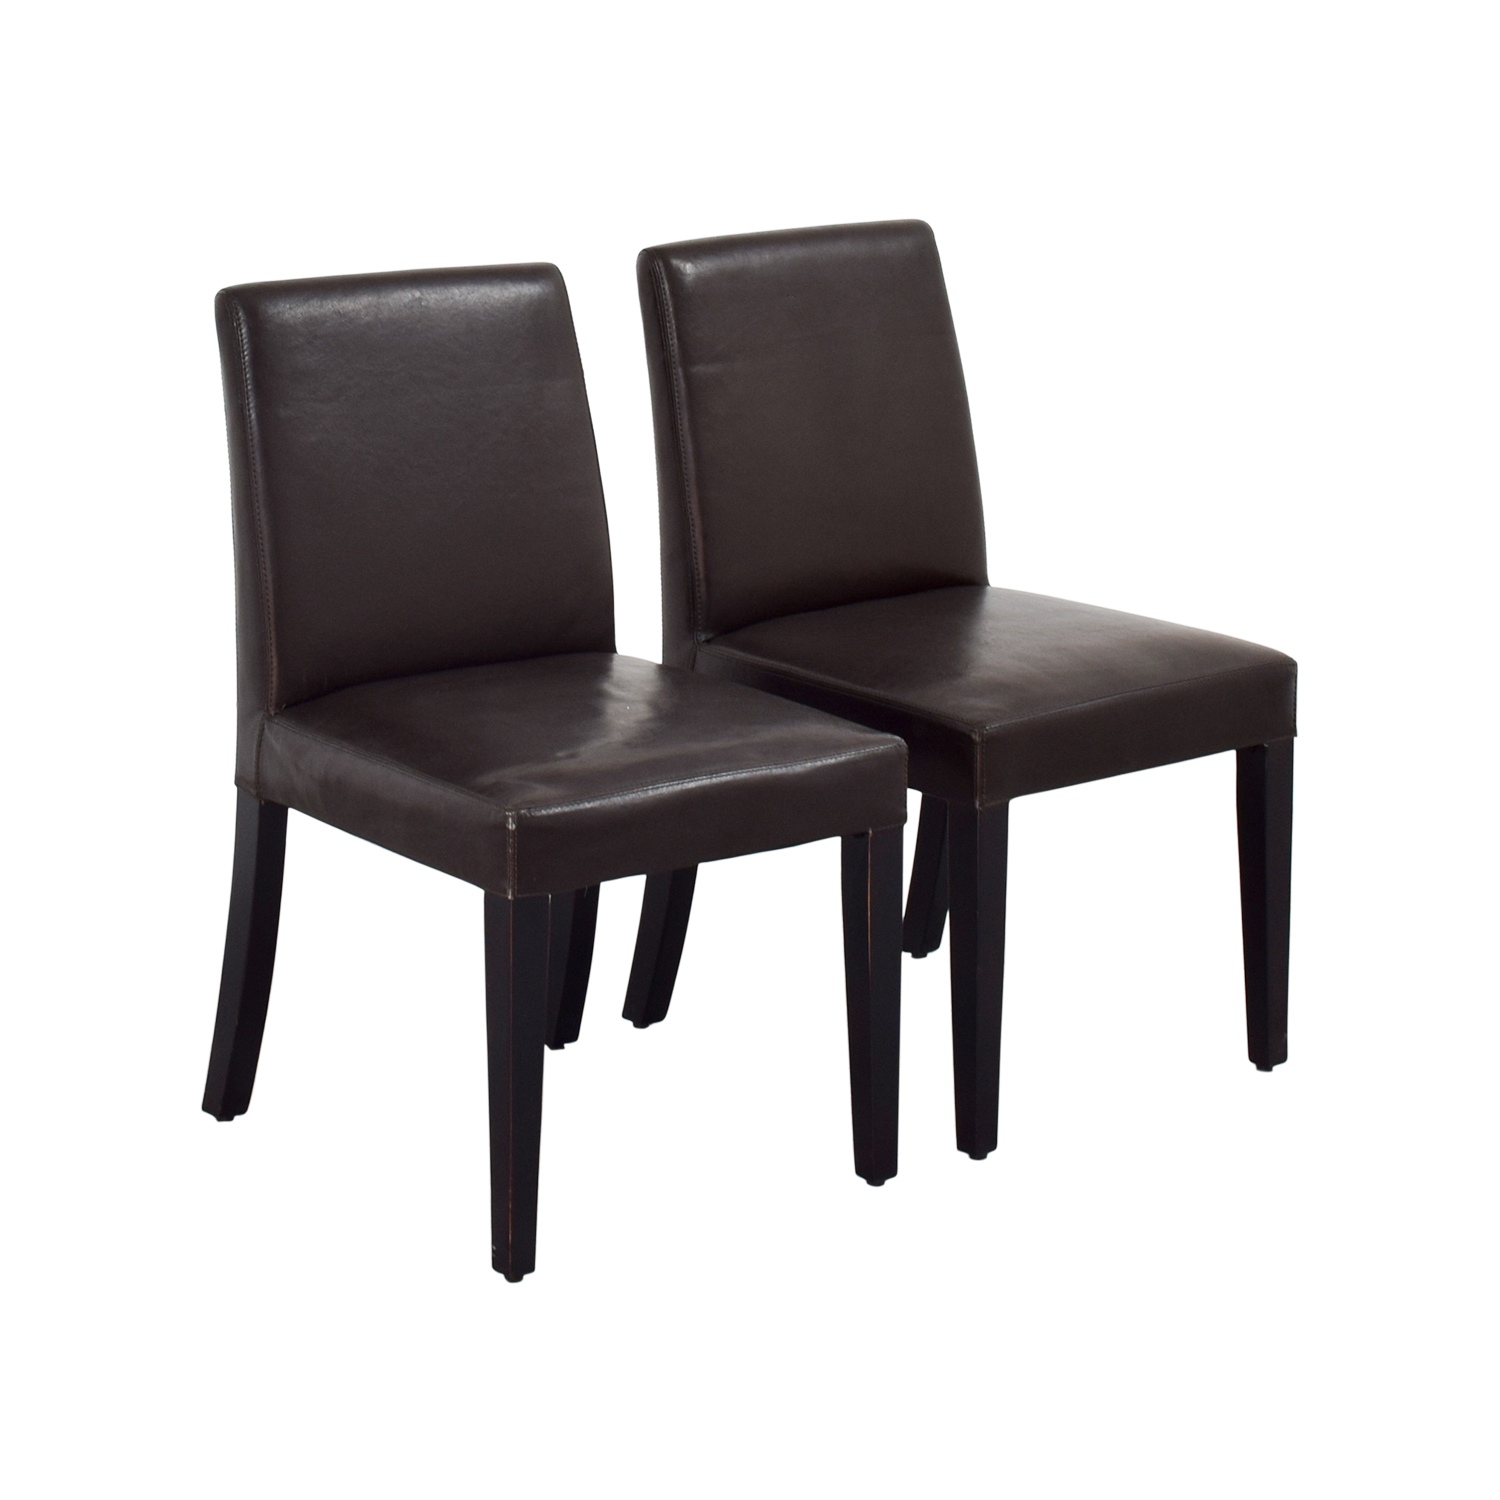 Crate And Barrel Dining Room Chairs: Crate And Barrel Crate & Barrel Brown Leather